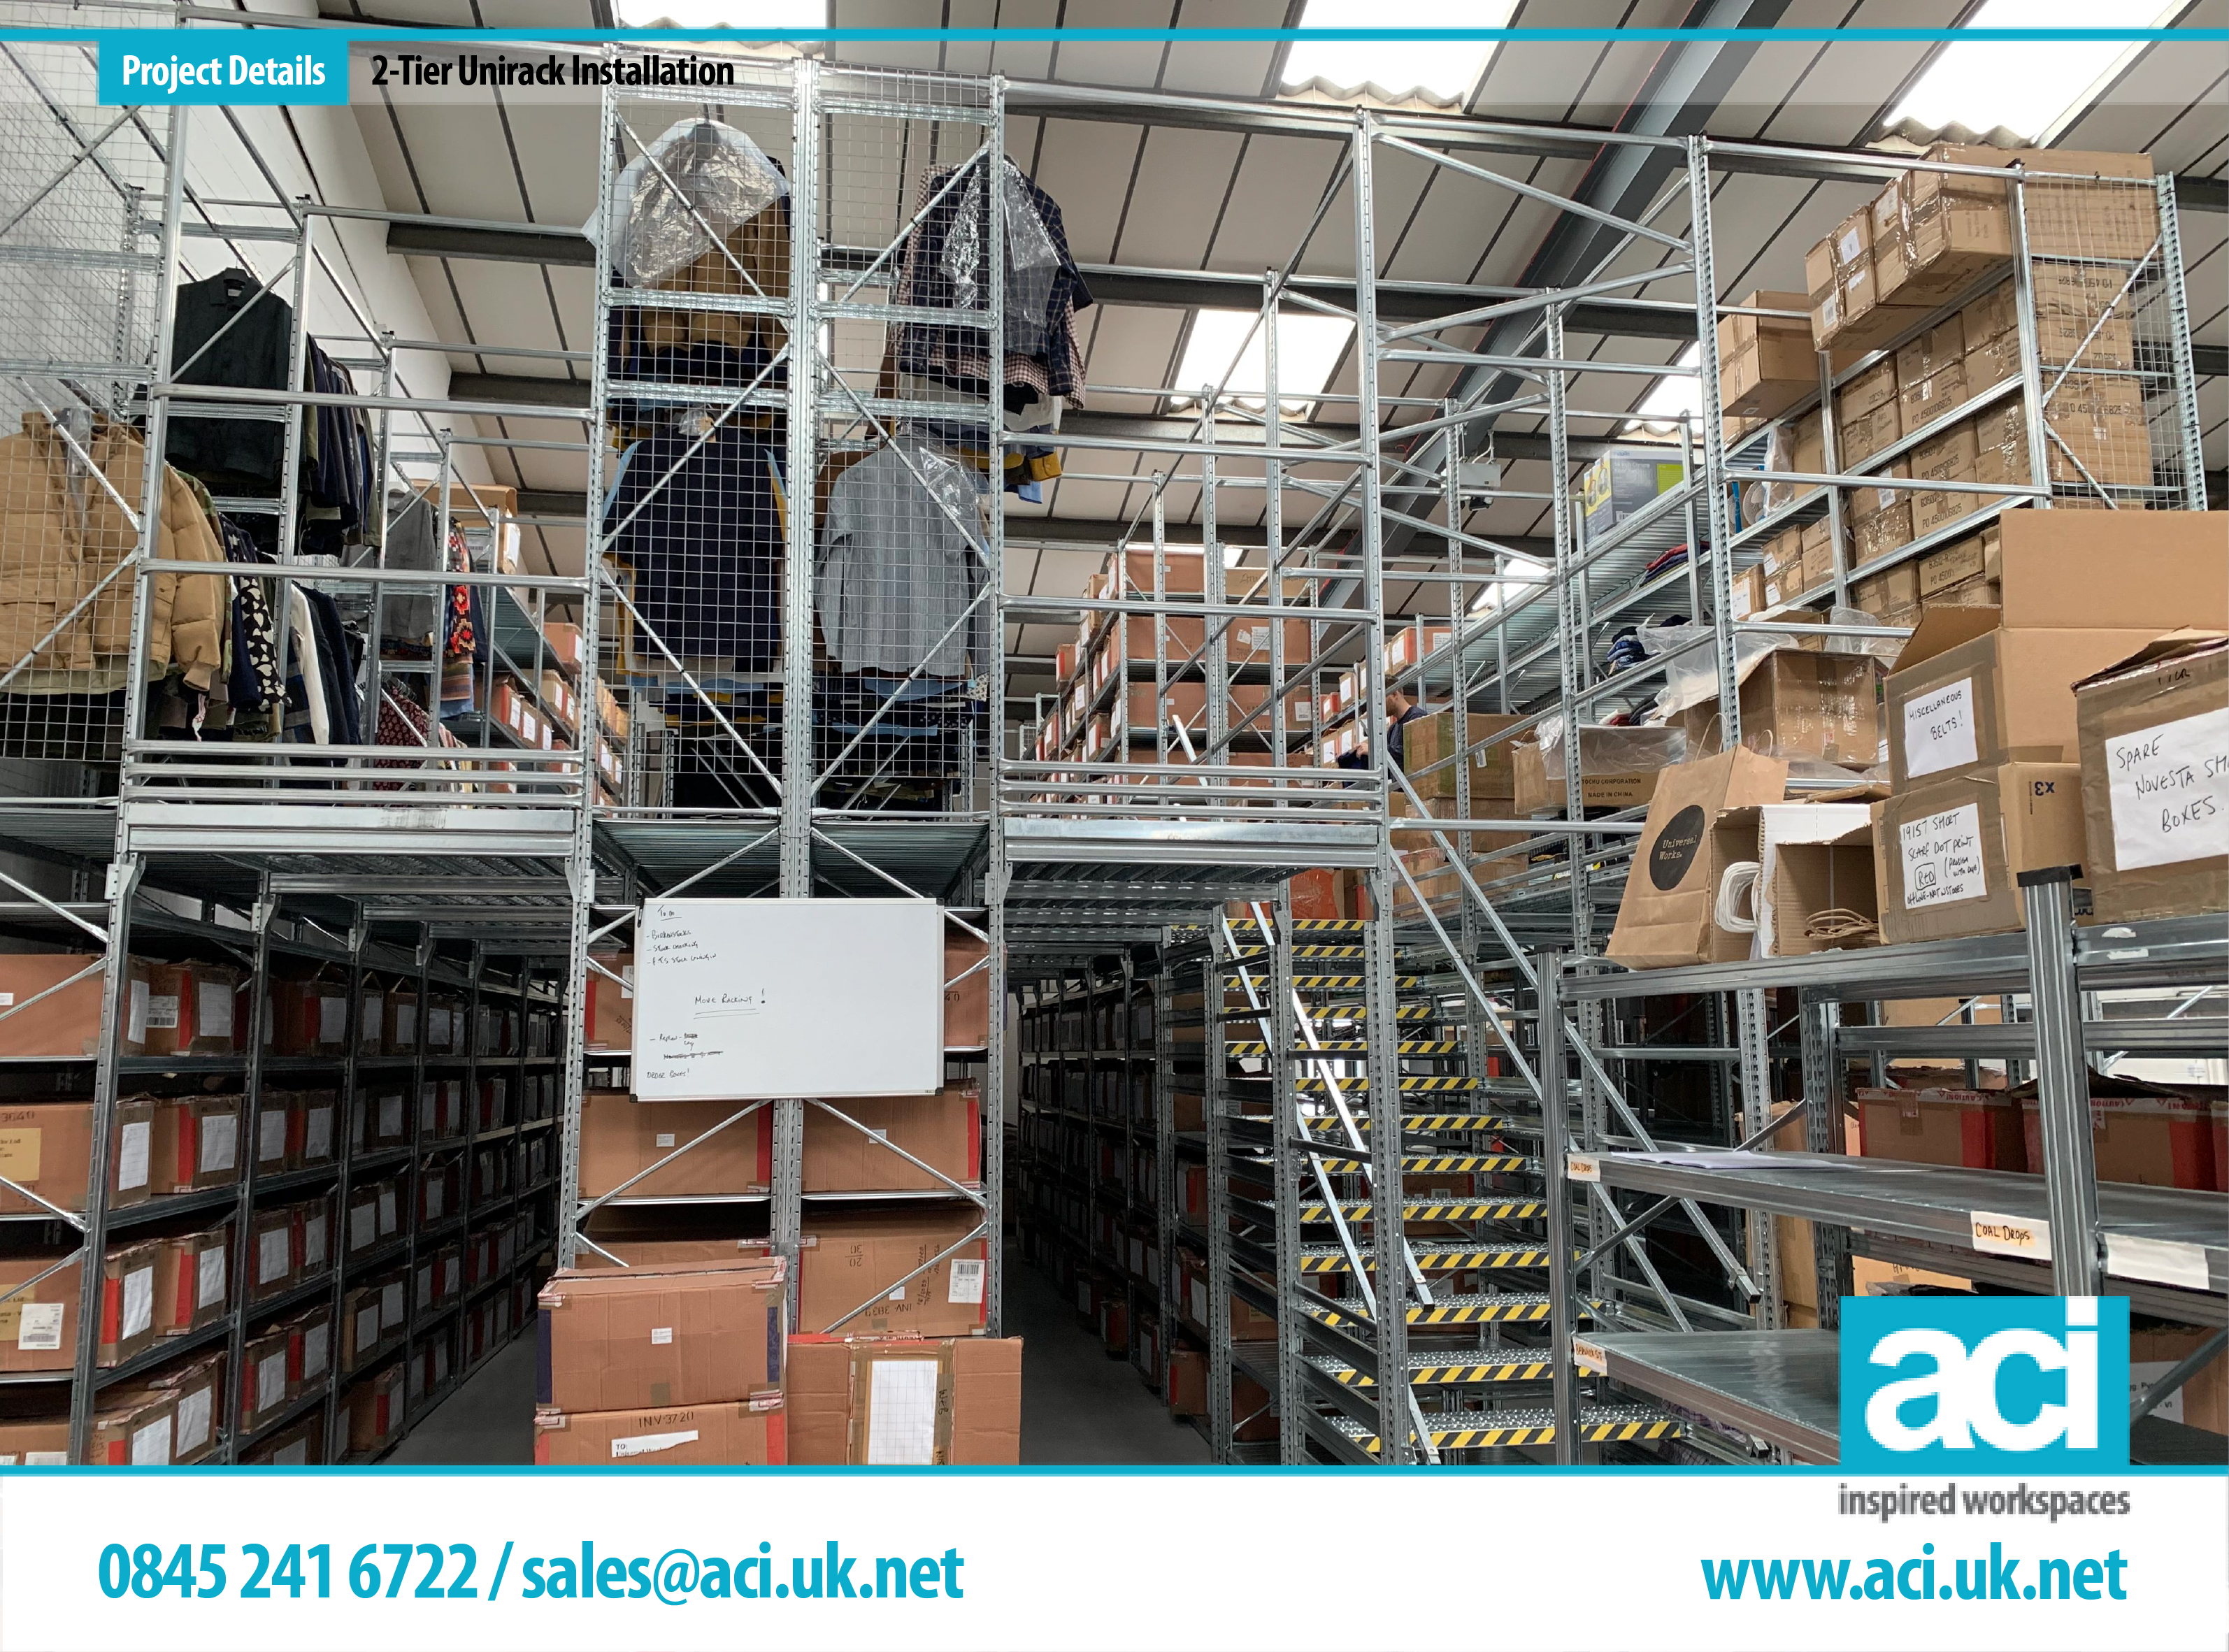 Image of 2 Tier Shelving Retail Shelving